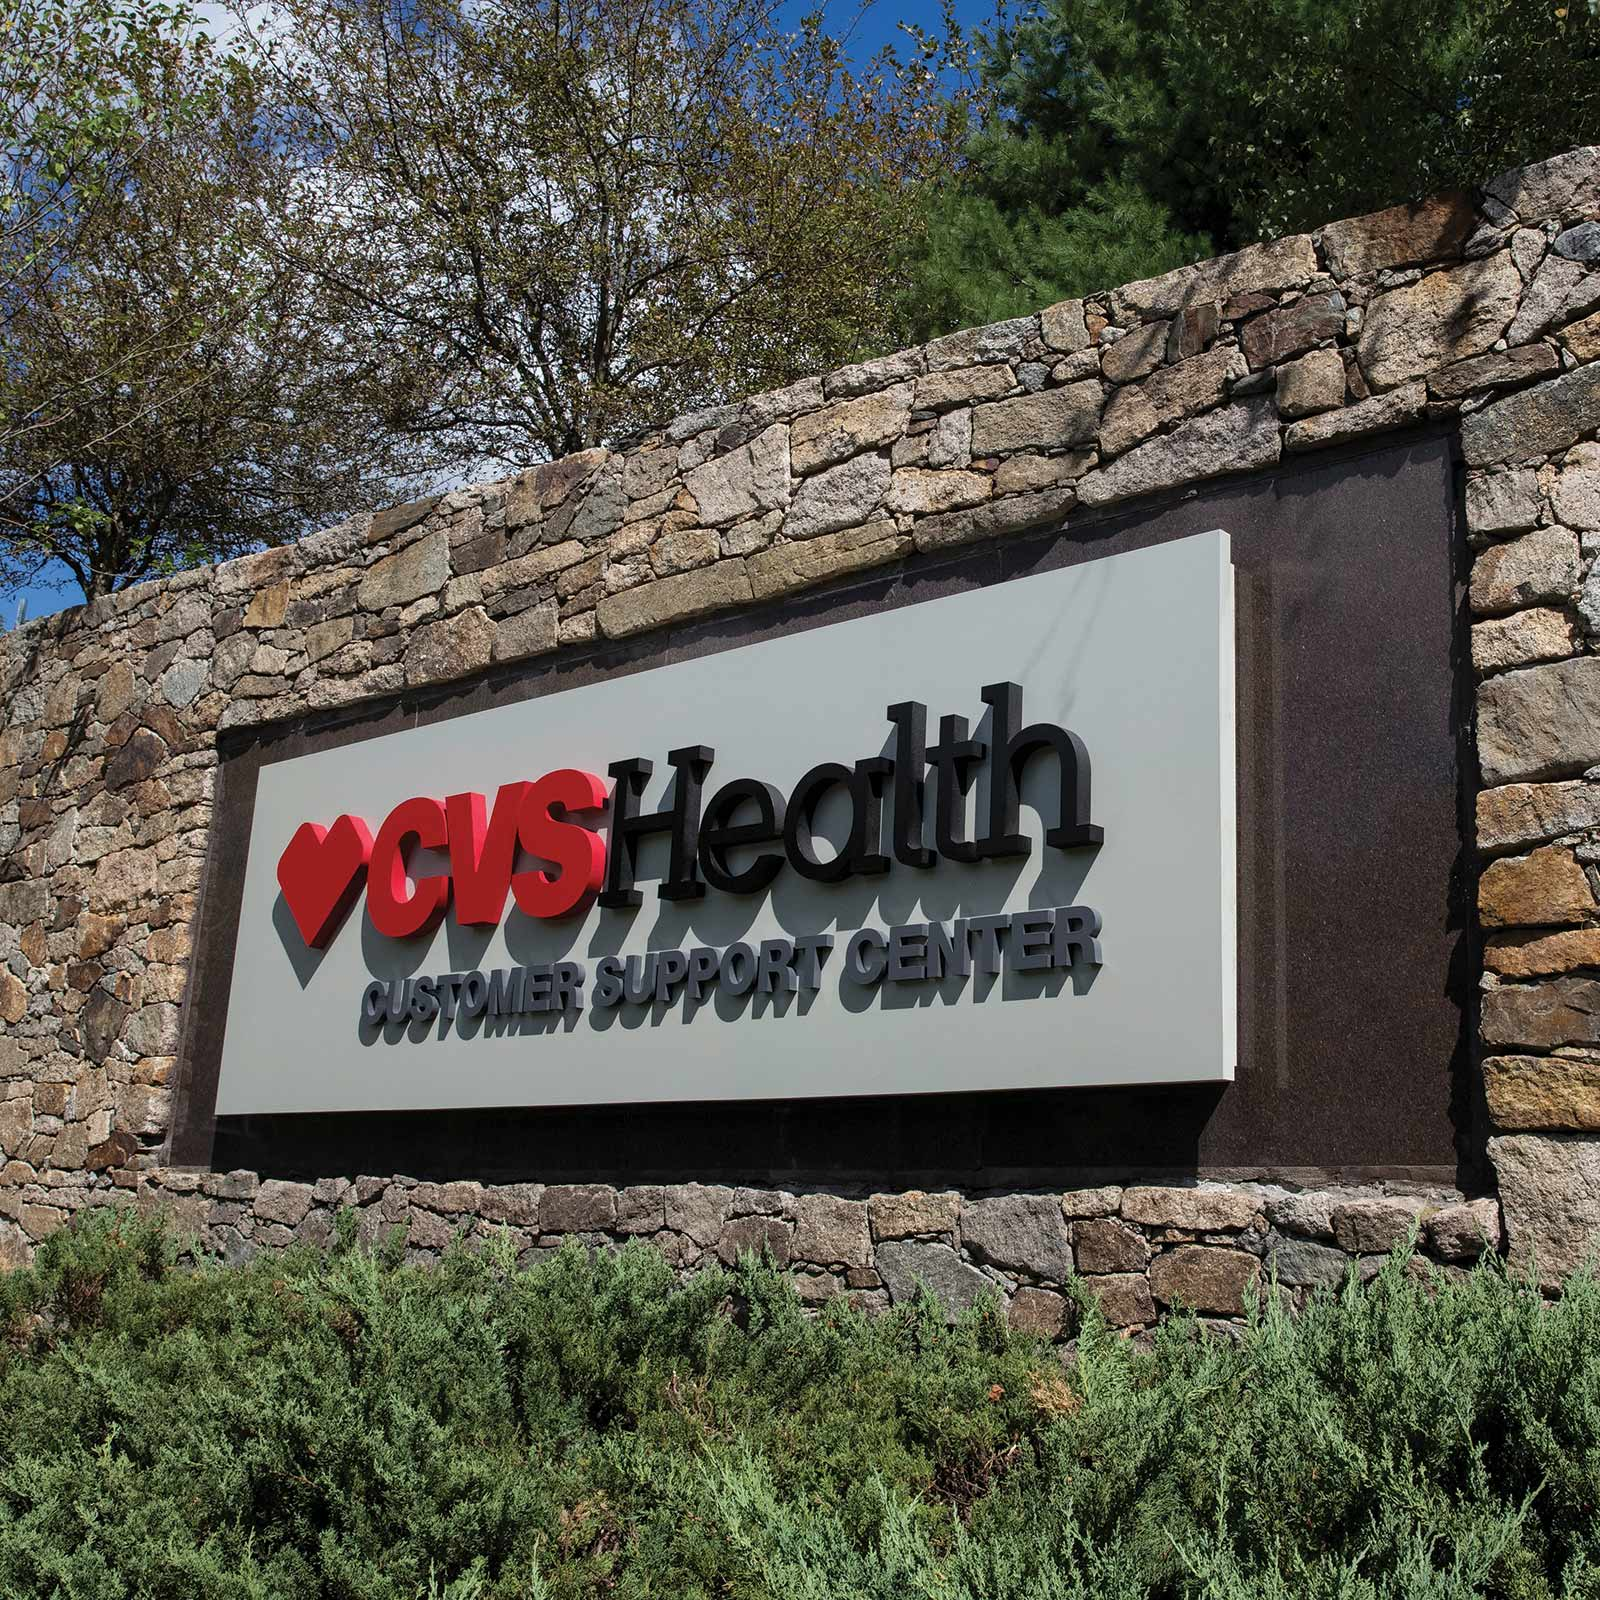 A photo of the exterior sign on the stone wall, outside of the CVS Health Customer Service Center in Woonocket, Rhode Island.